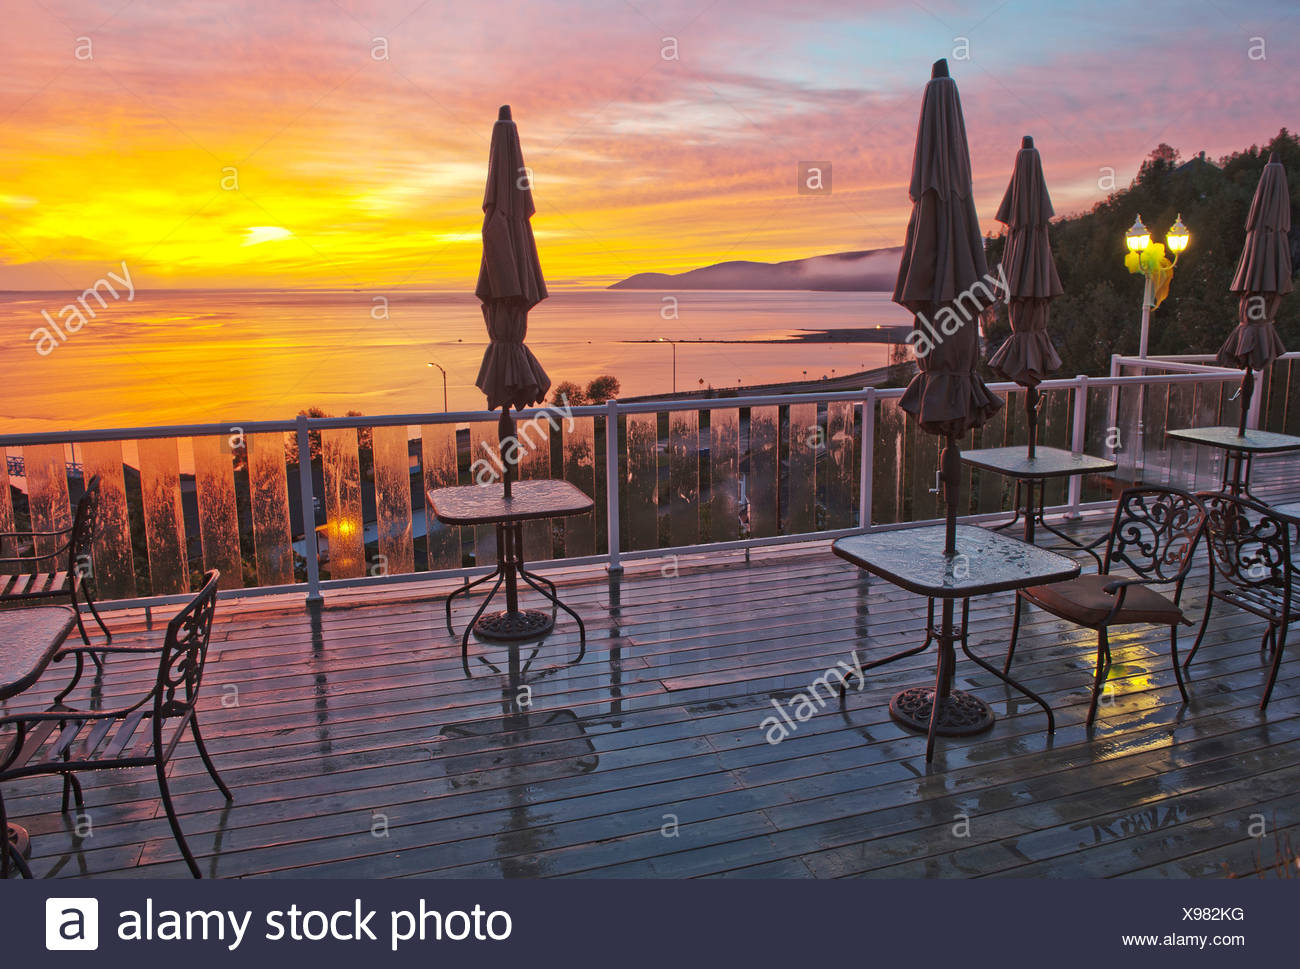 Terrace, Gite Mer et Montagne, St. Lawrence River, river, Malbaie, Quebec, Canada, sunset, tables, chairs - Stock Image